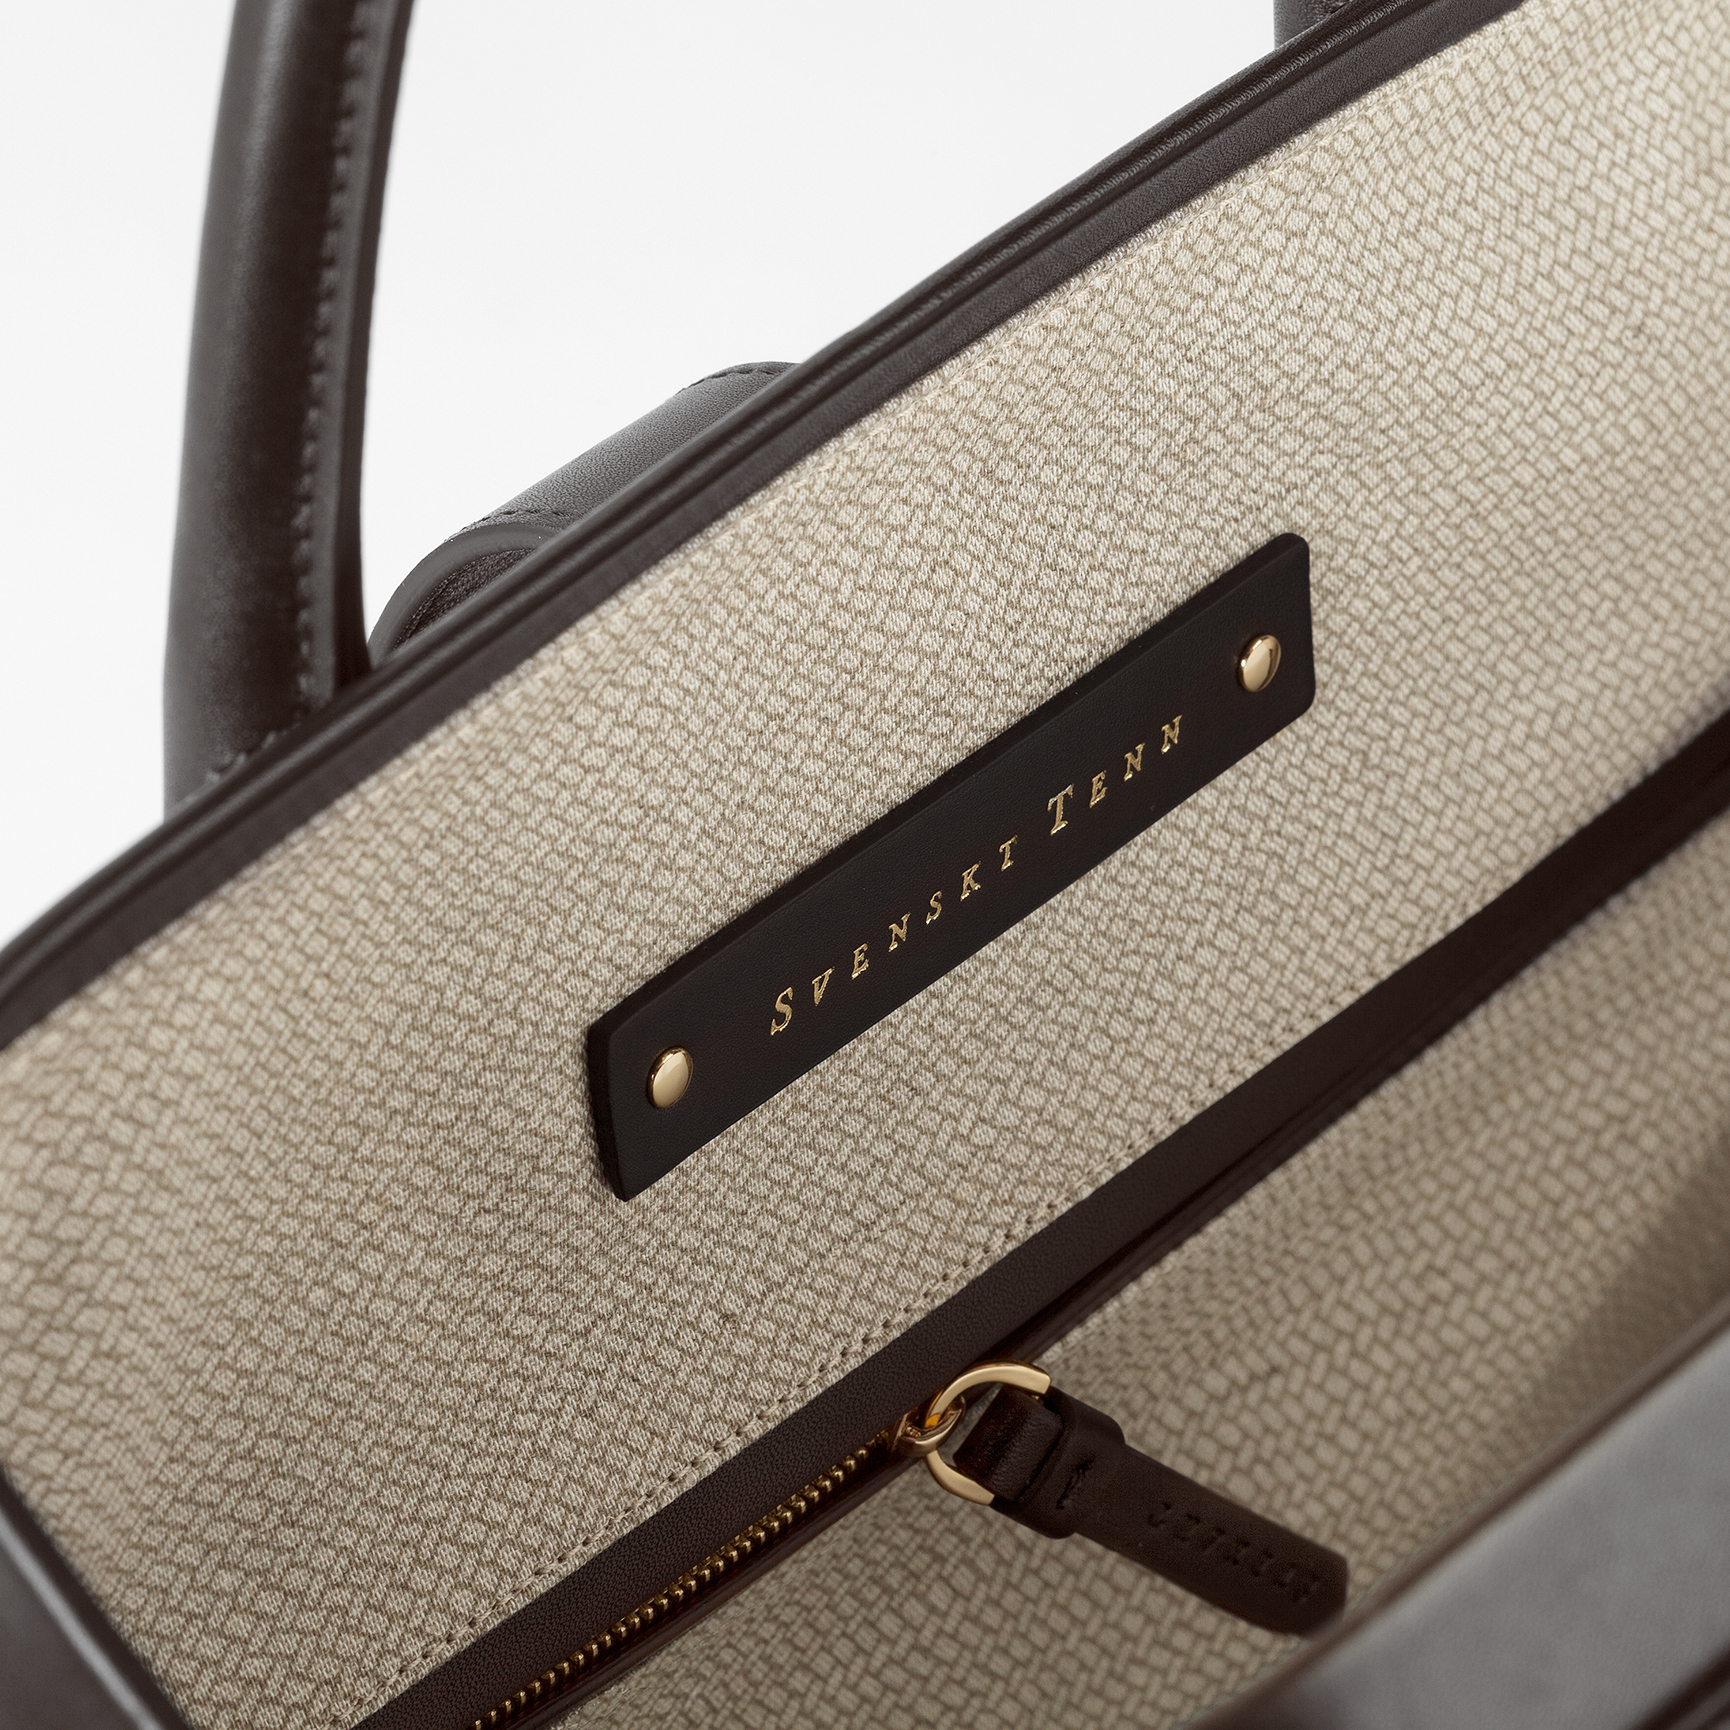 Svenskt Tenn is launching a collection of leather bags inspired by Estrid Ericsson.